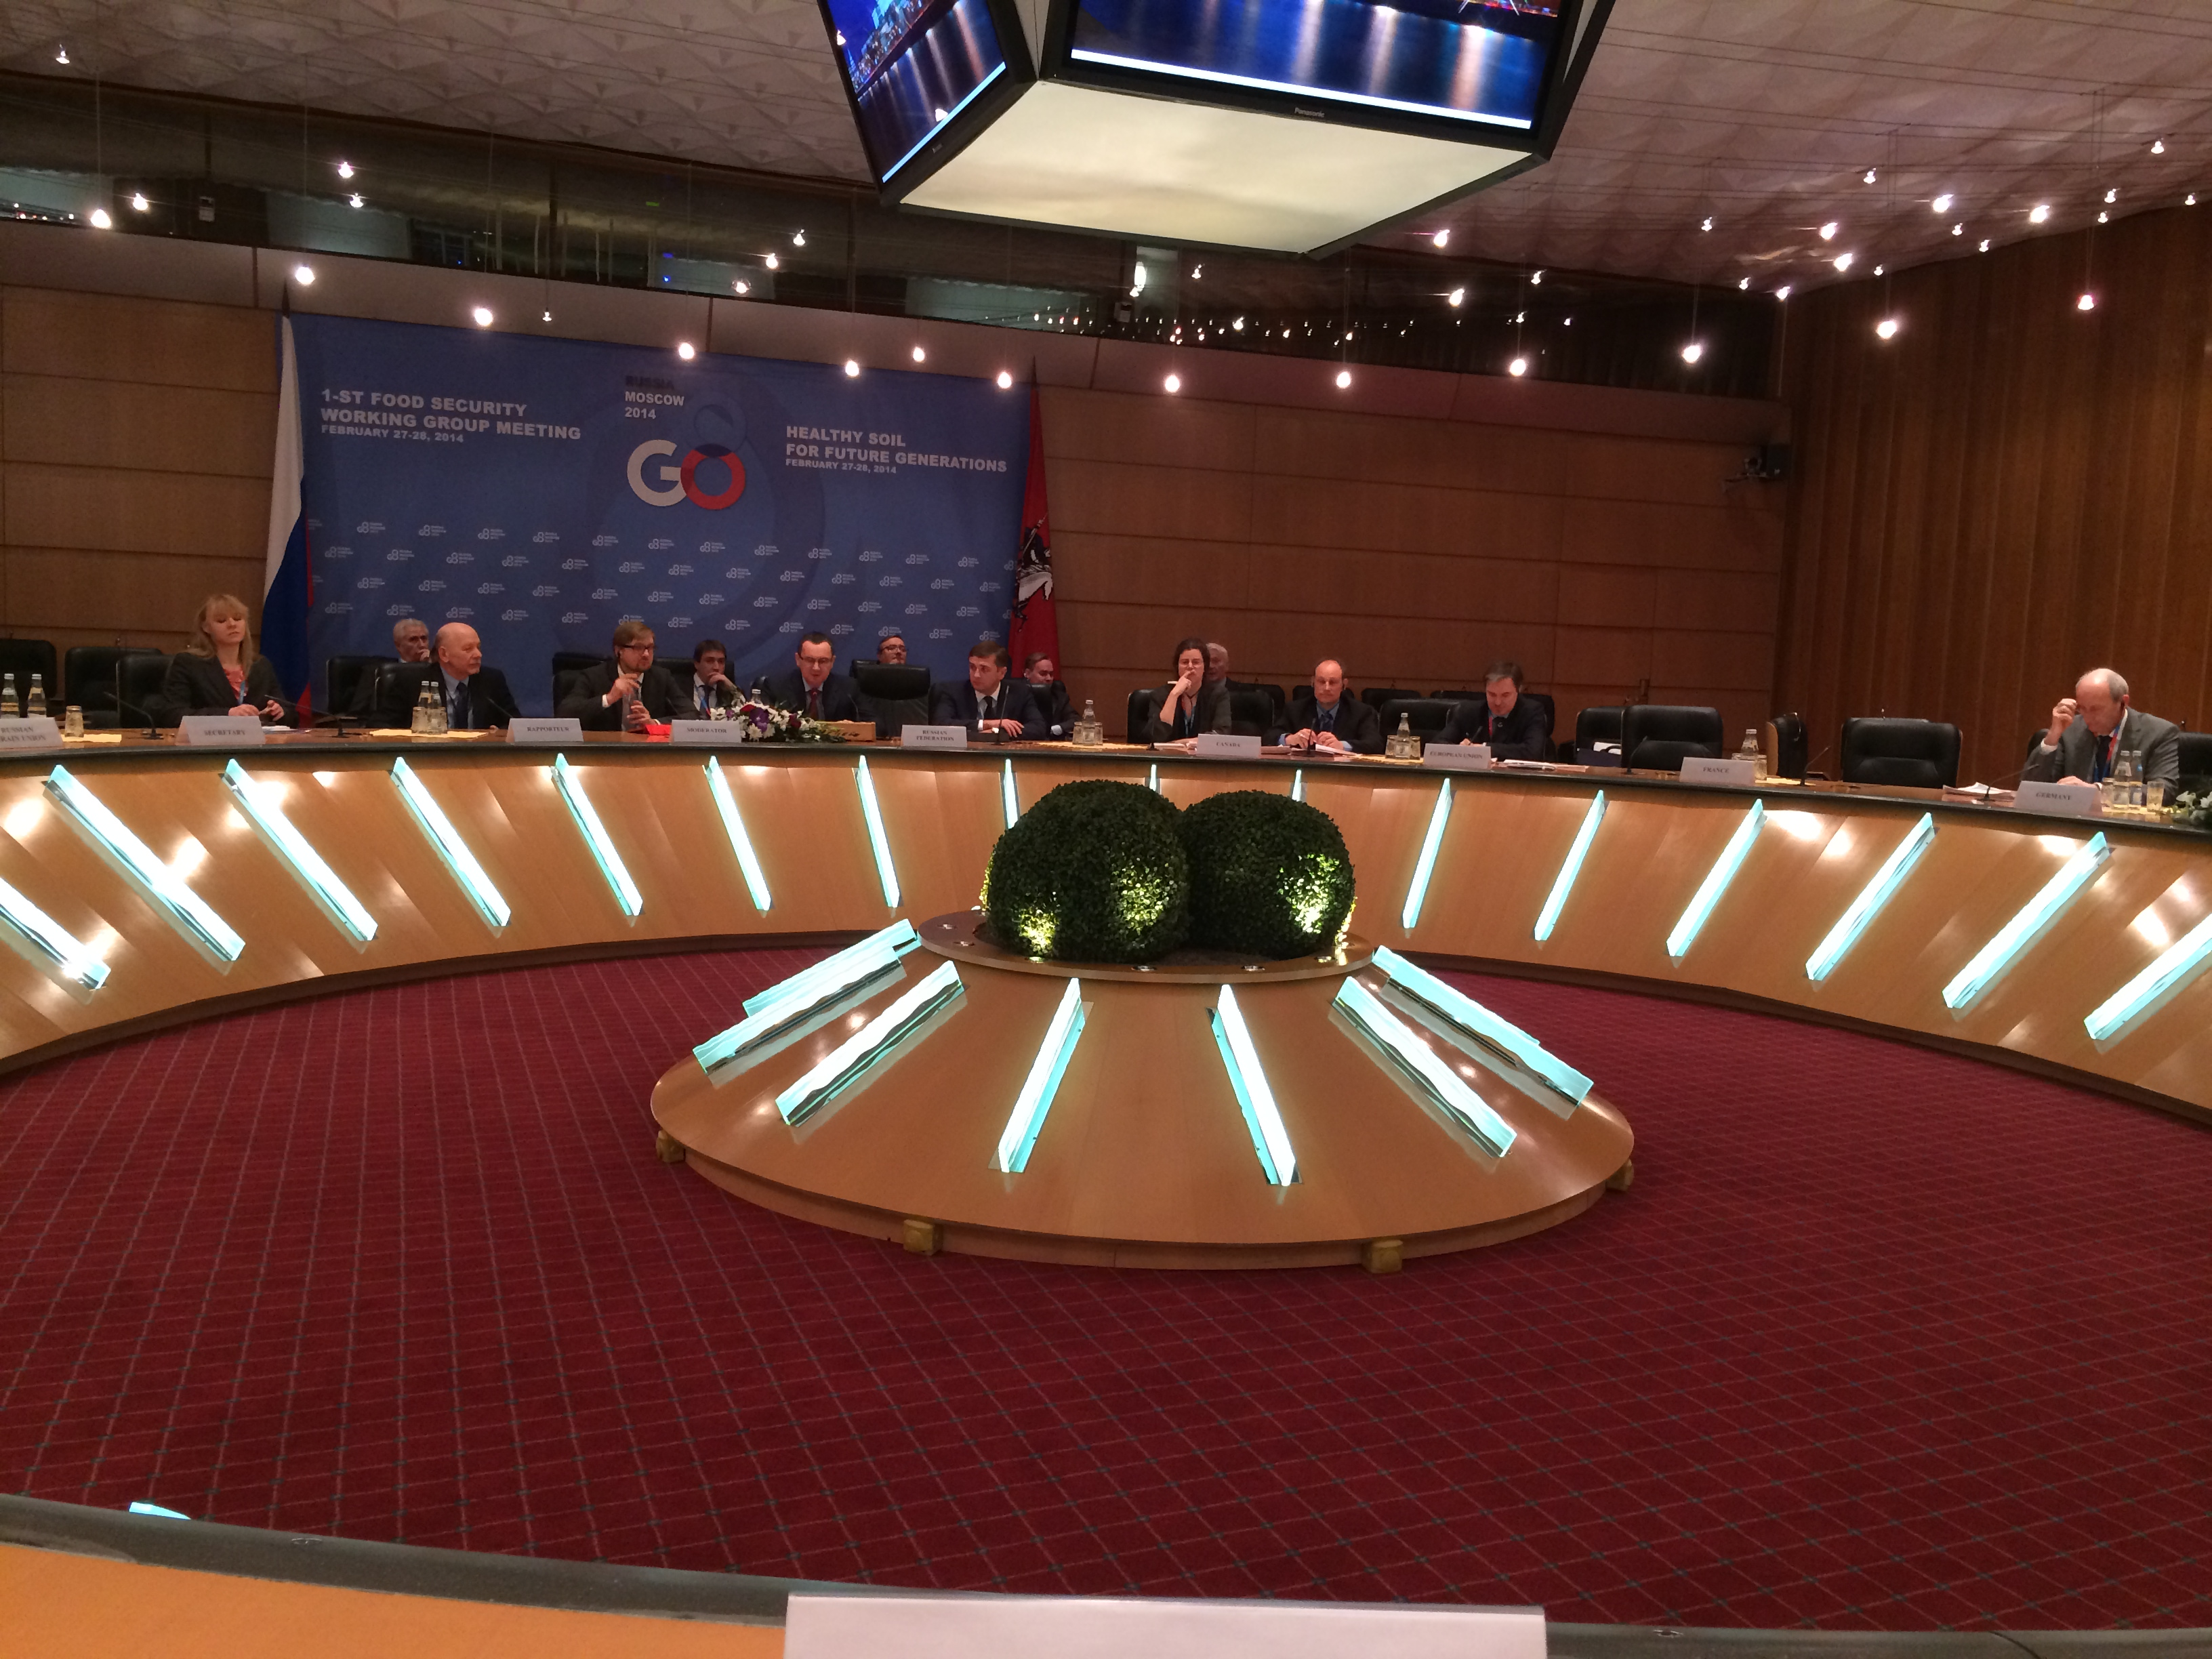 G8 1st Food Security Working Group Meeting: Healthy Soil for Future Generations